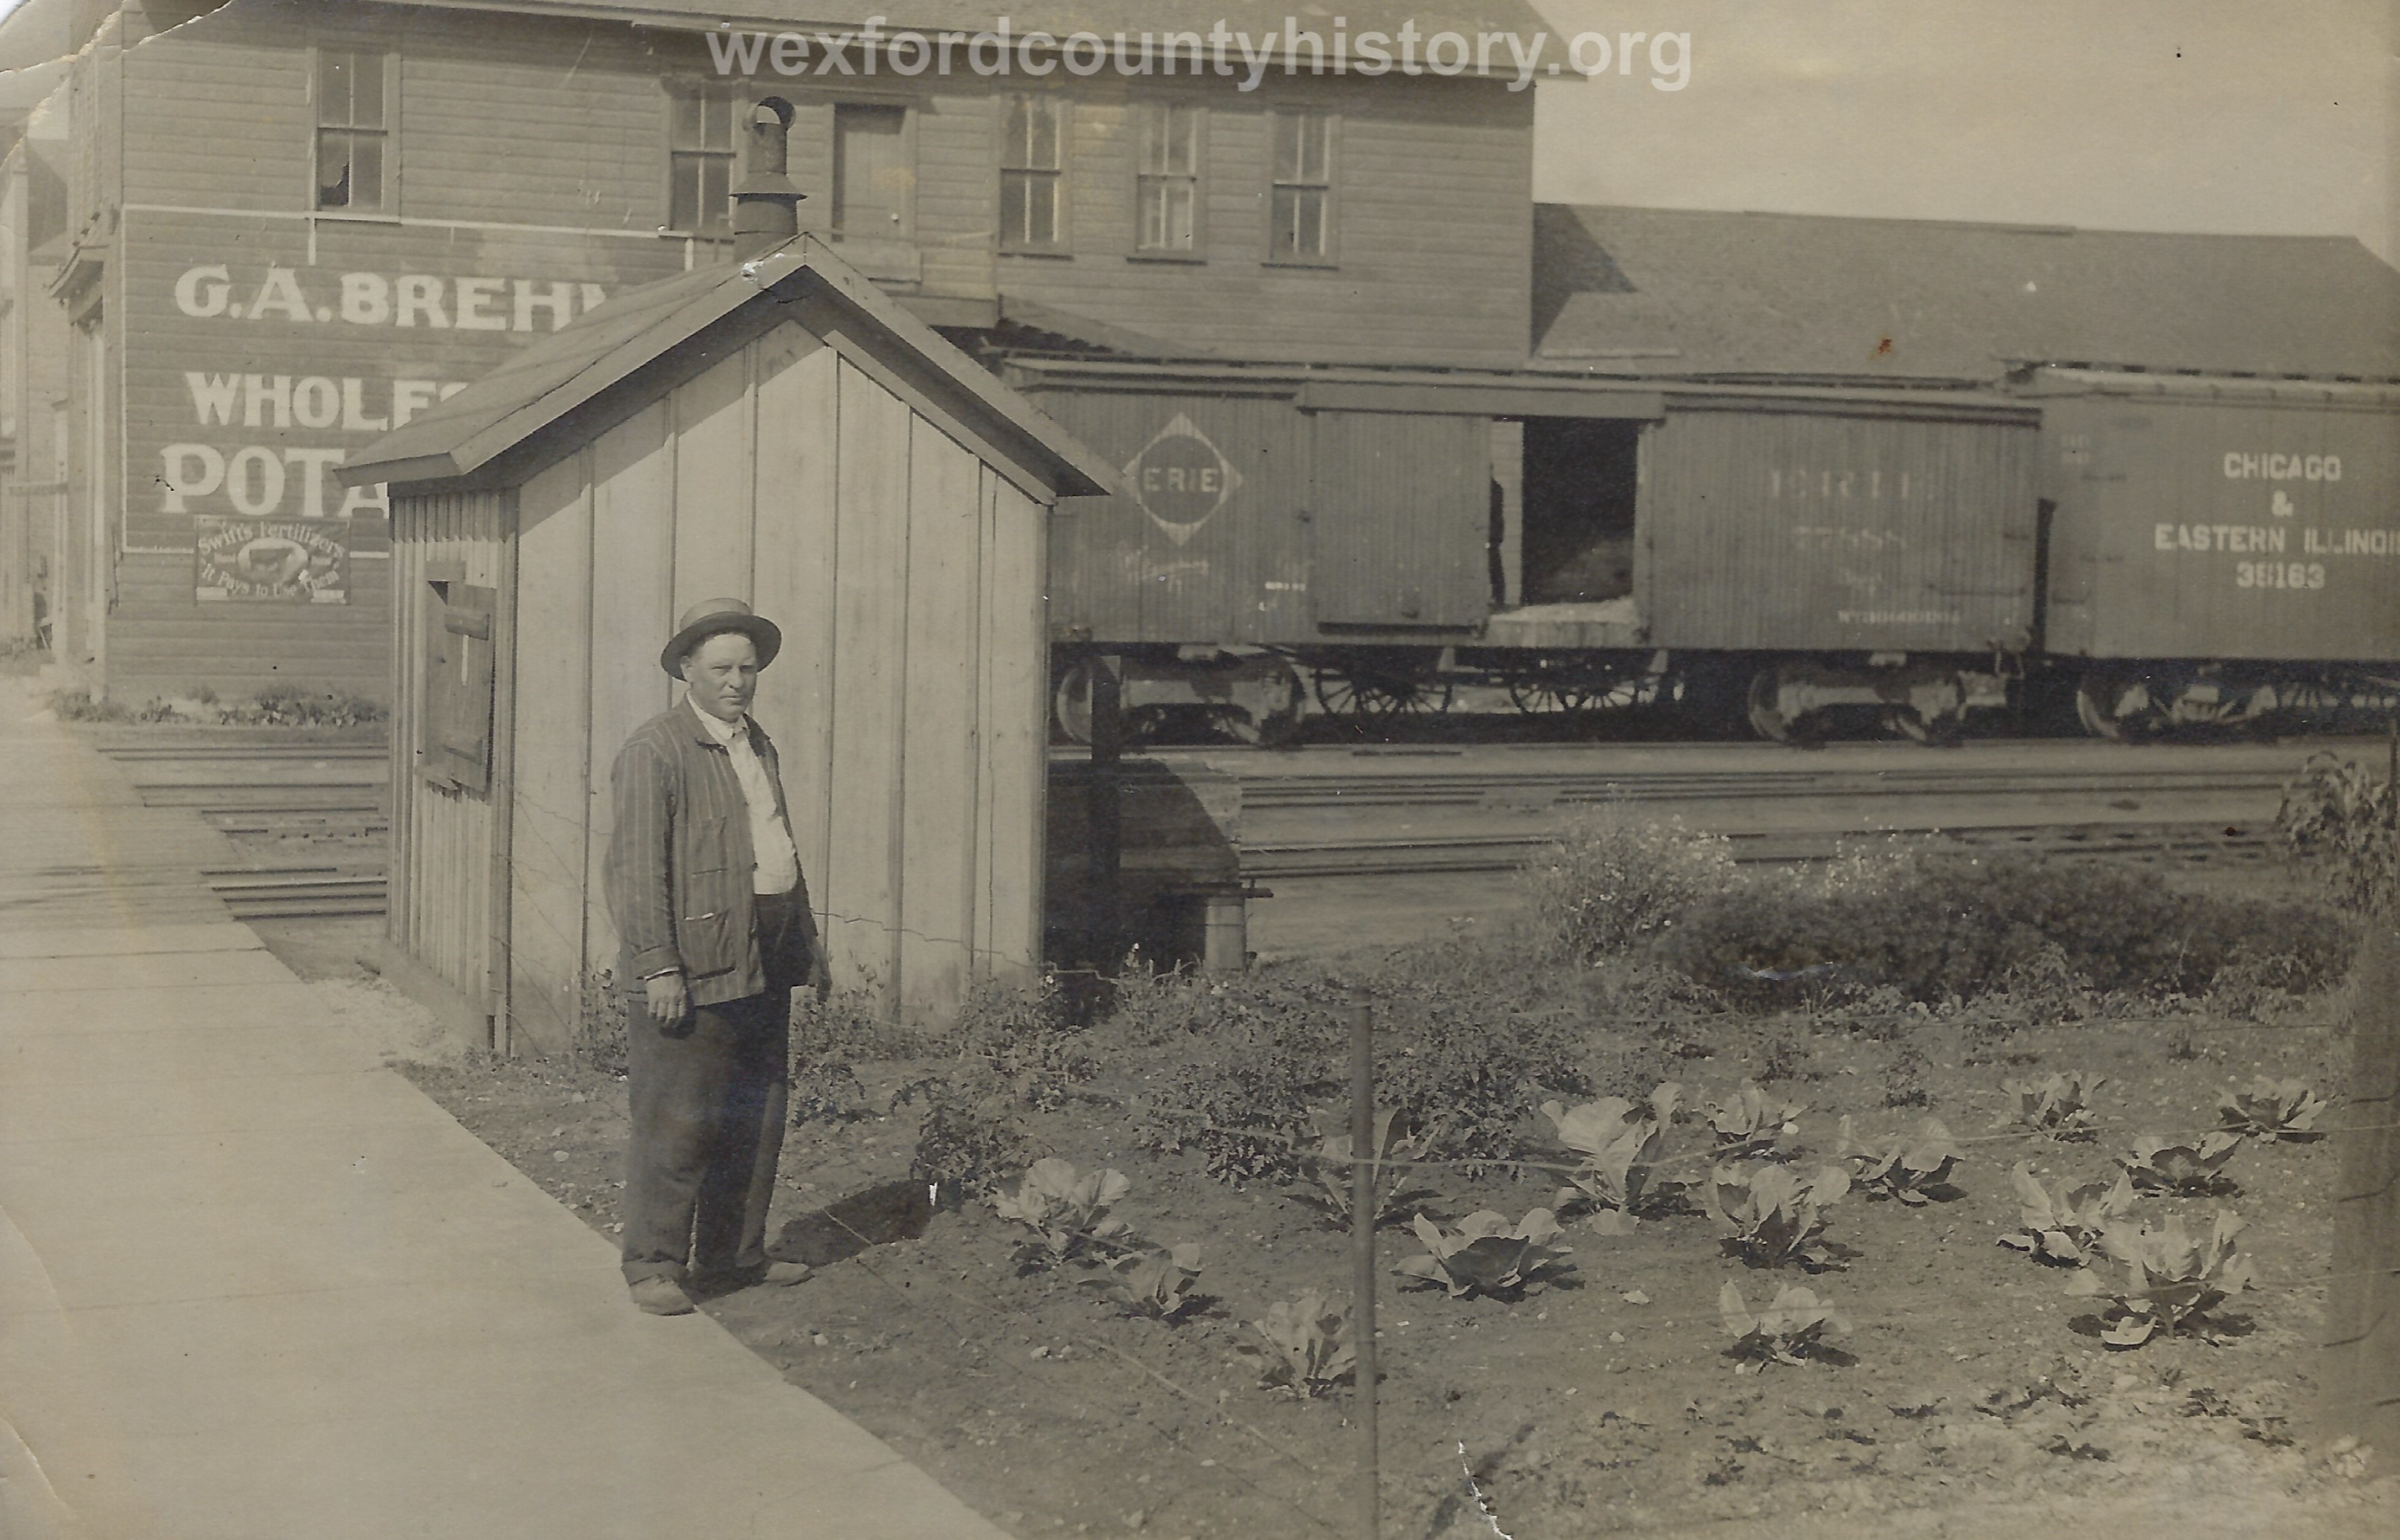 George A. Brehm With His Warehouse On West Mason Street